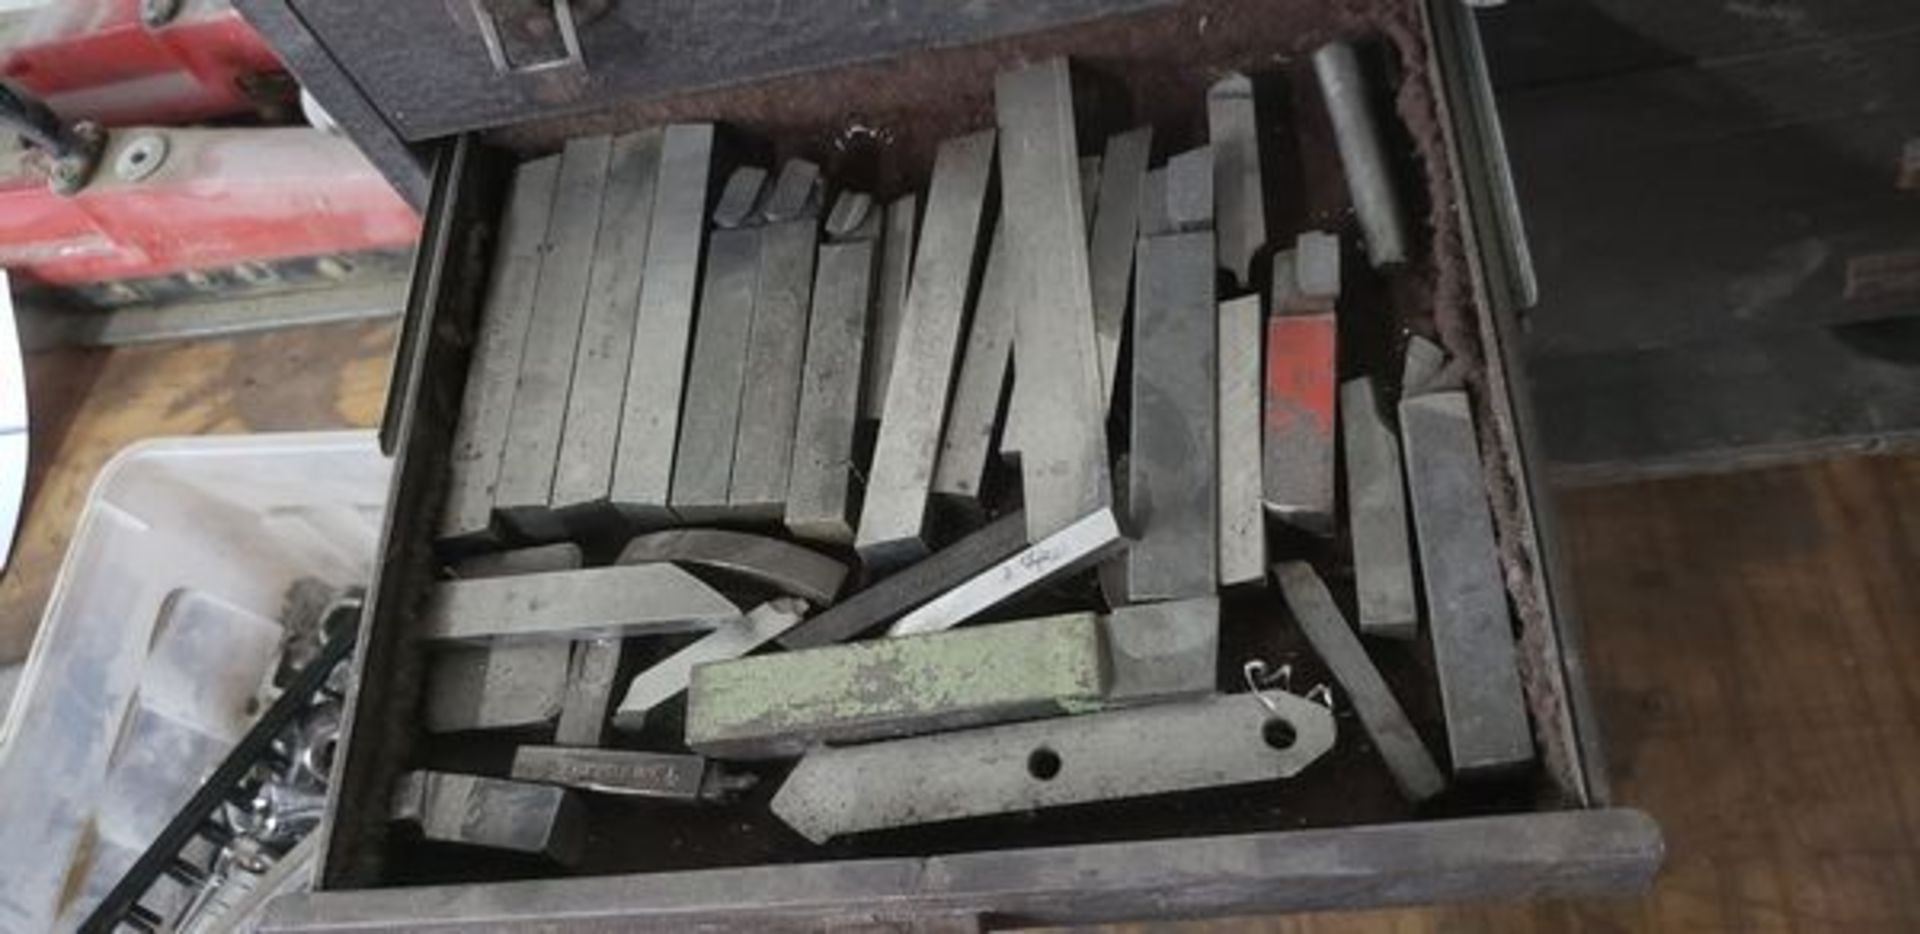 KENNEDY MACHINIST TOOL CHEST WITH CONTENTS - Image 5 of 11